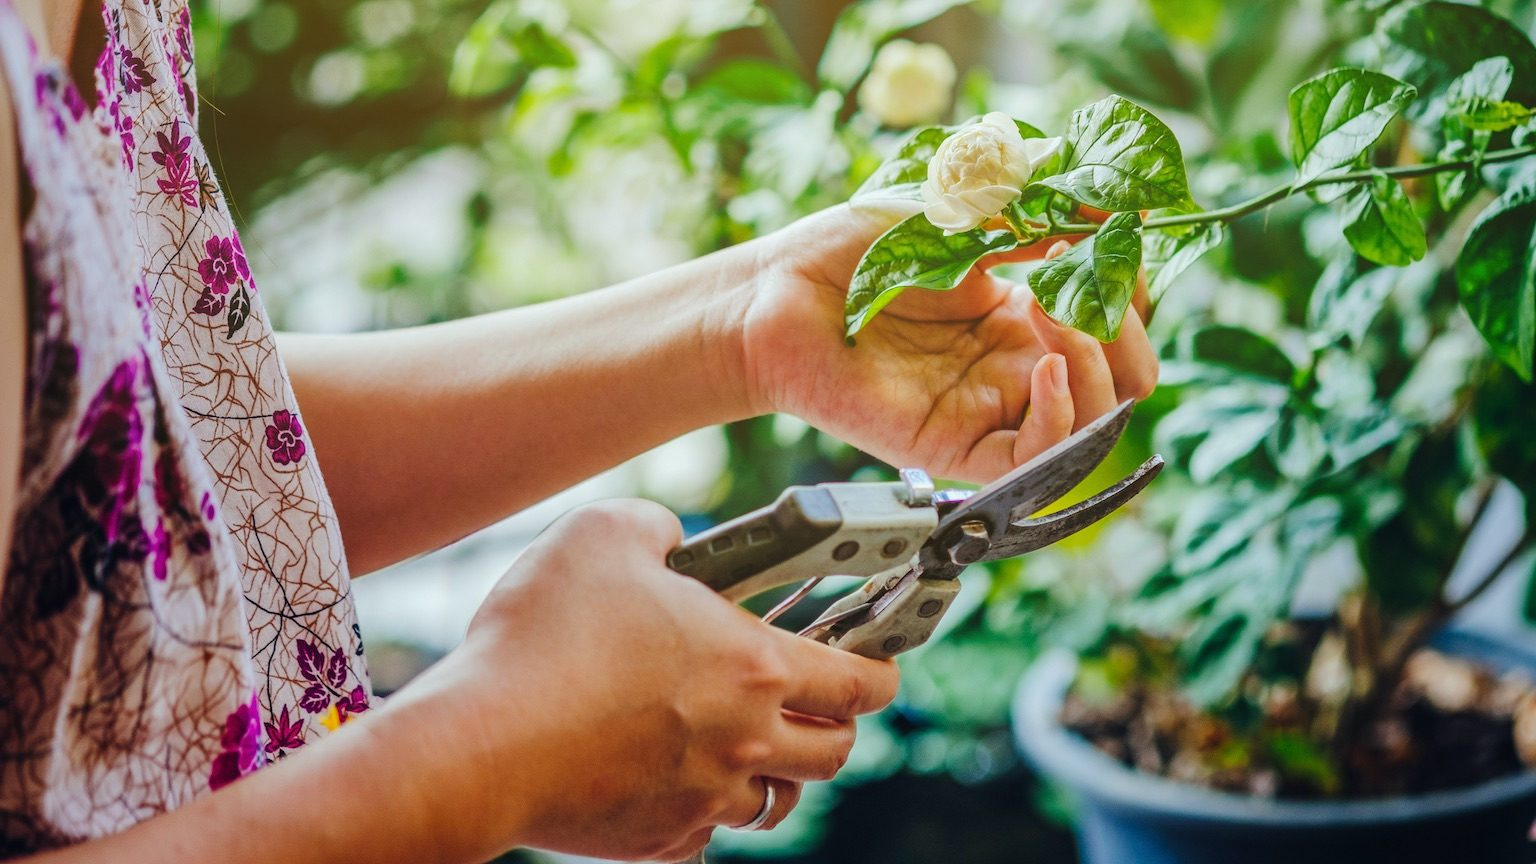 Cropped Hand Of Woman Cutting Arabian Jasmine Flower With Pruning Shears